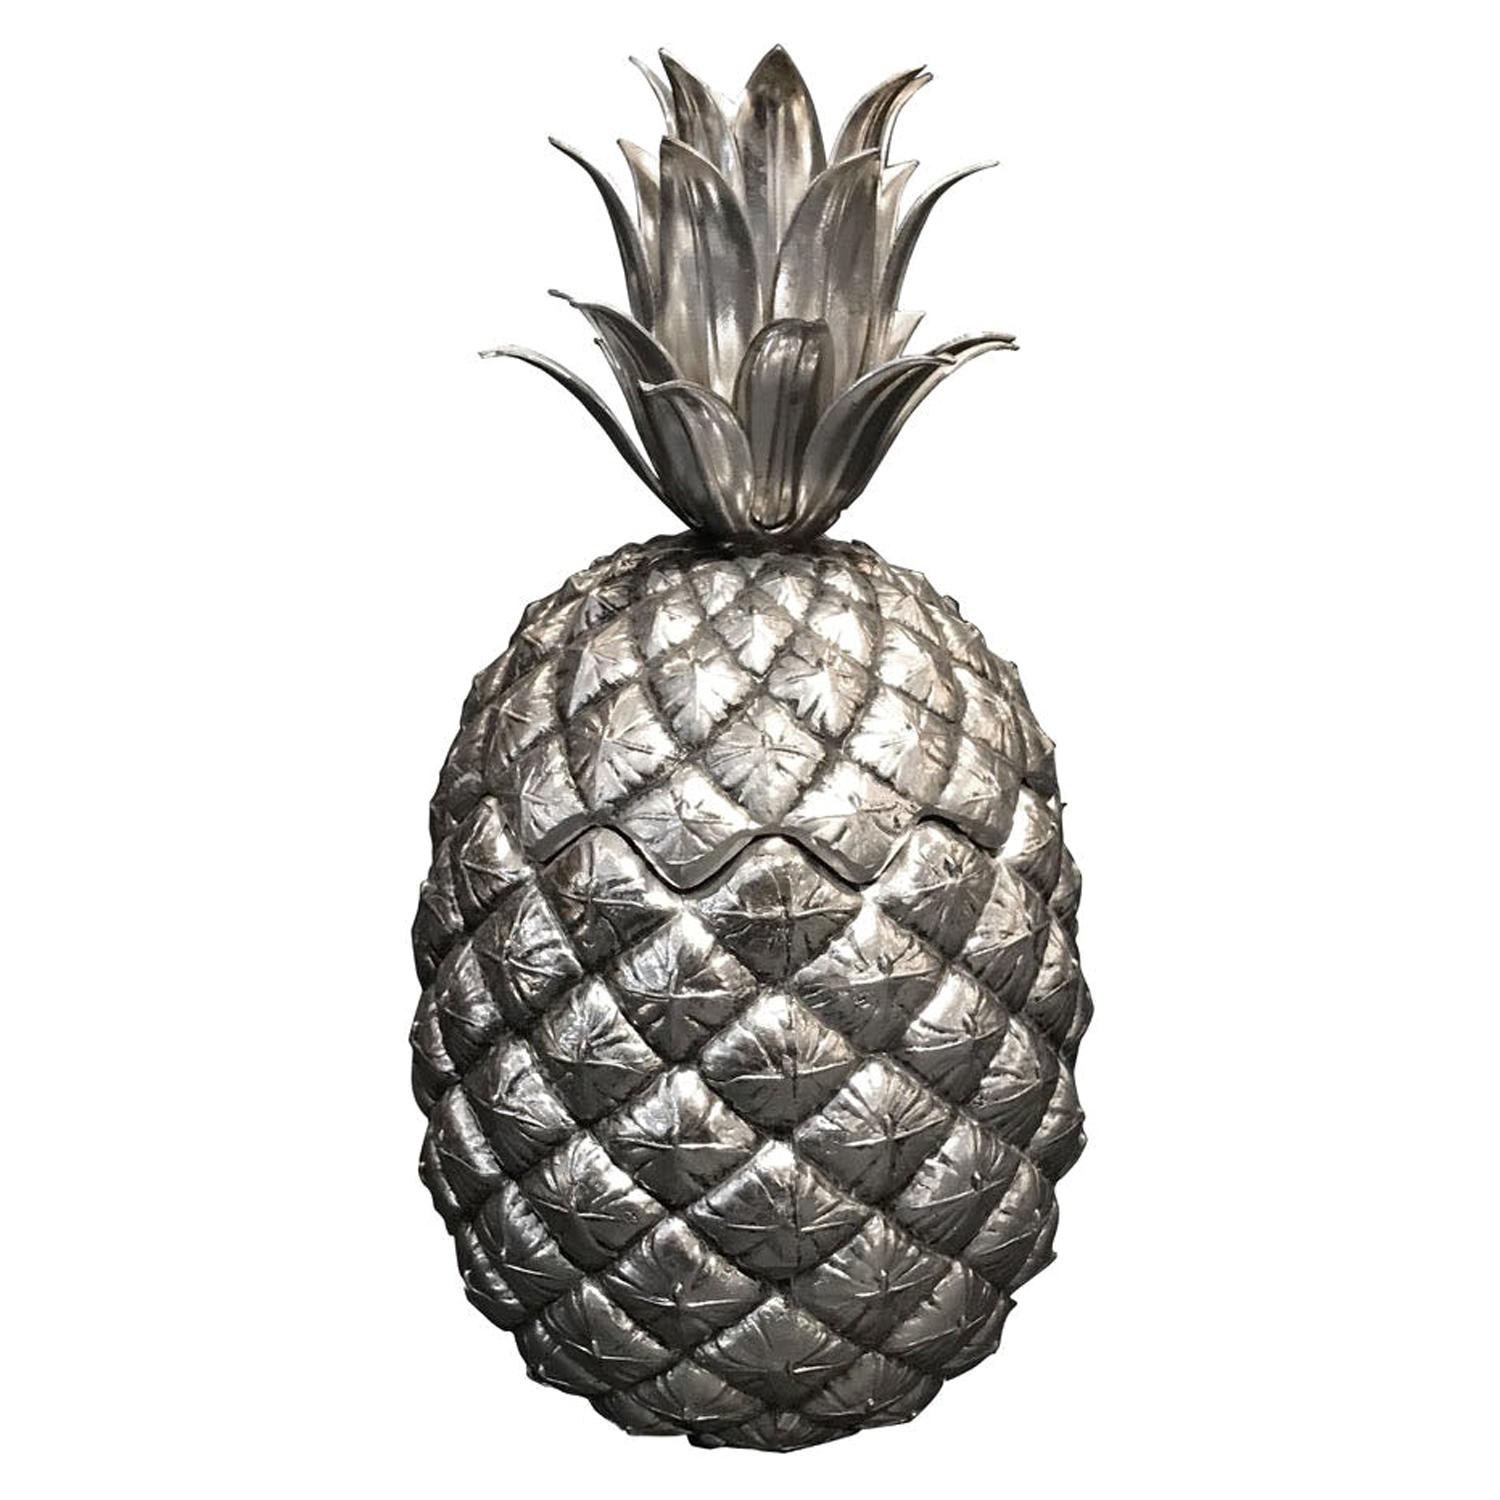 Pineapple Ice Bucket Designed by Mauro Manetti, Silver Plated, circa 1960